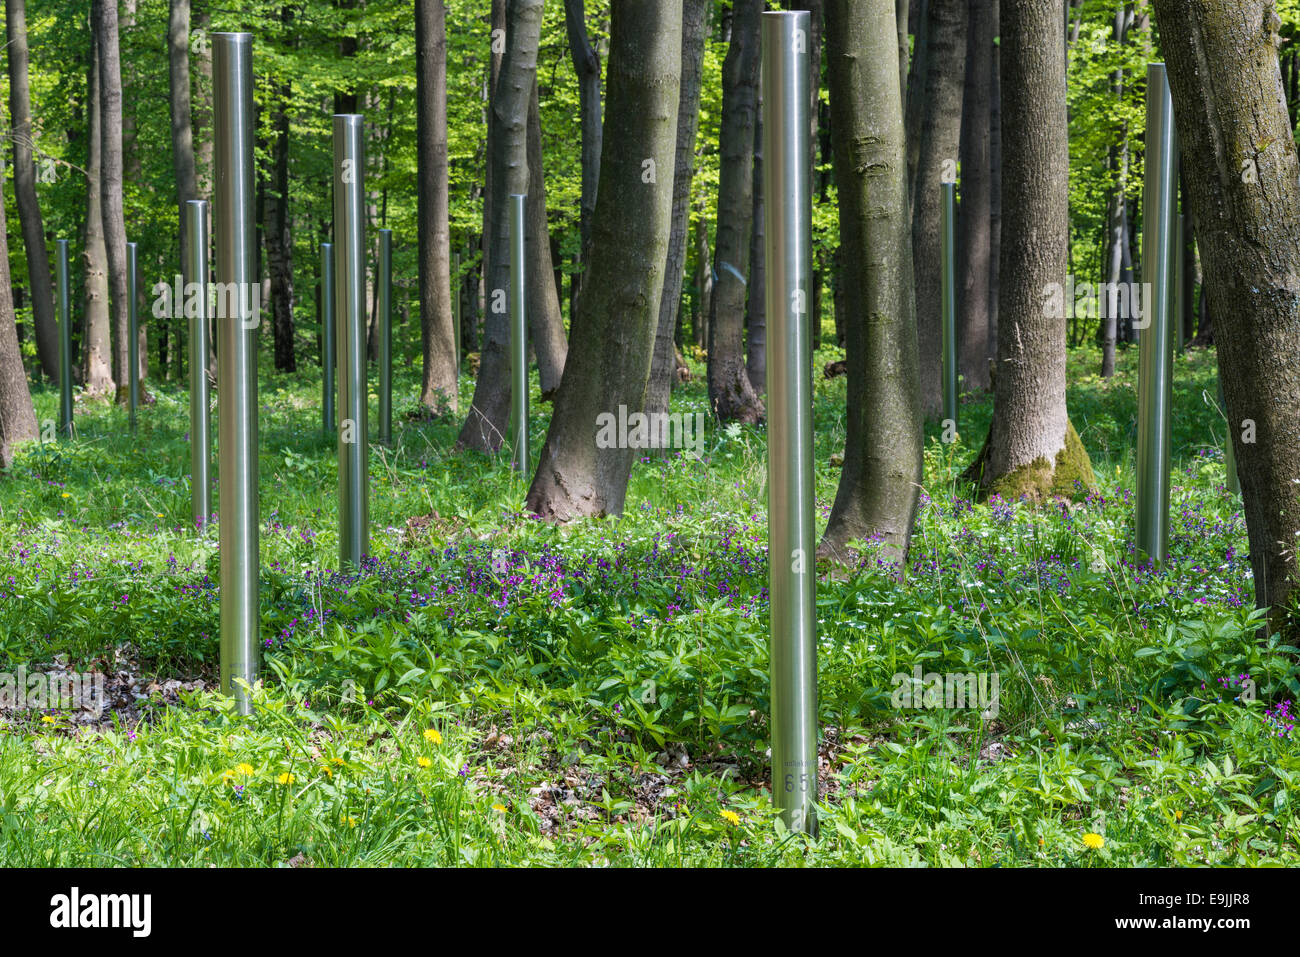 Buchenwald Memorial, numbered stainless steel stelae in the woods, symbolic grave stones for the dead of the Soviet - Stock Image